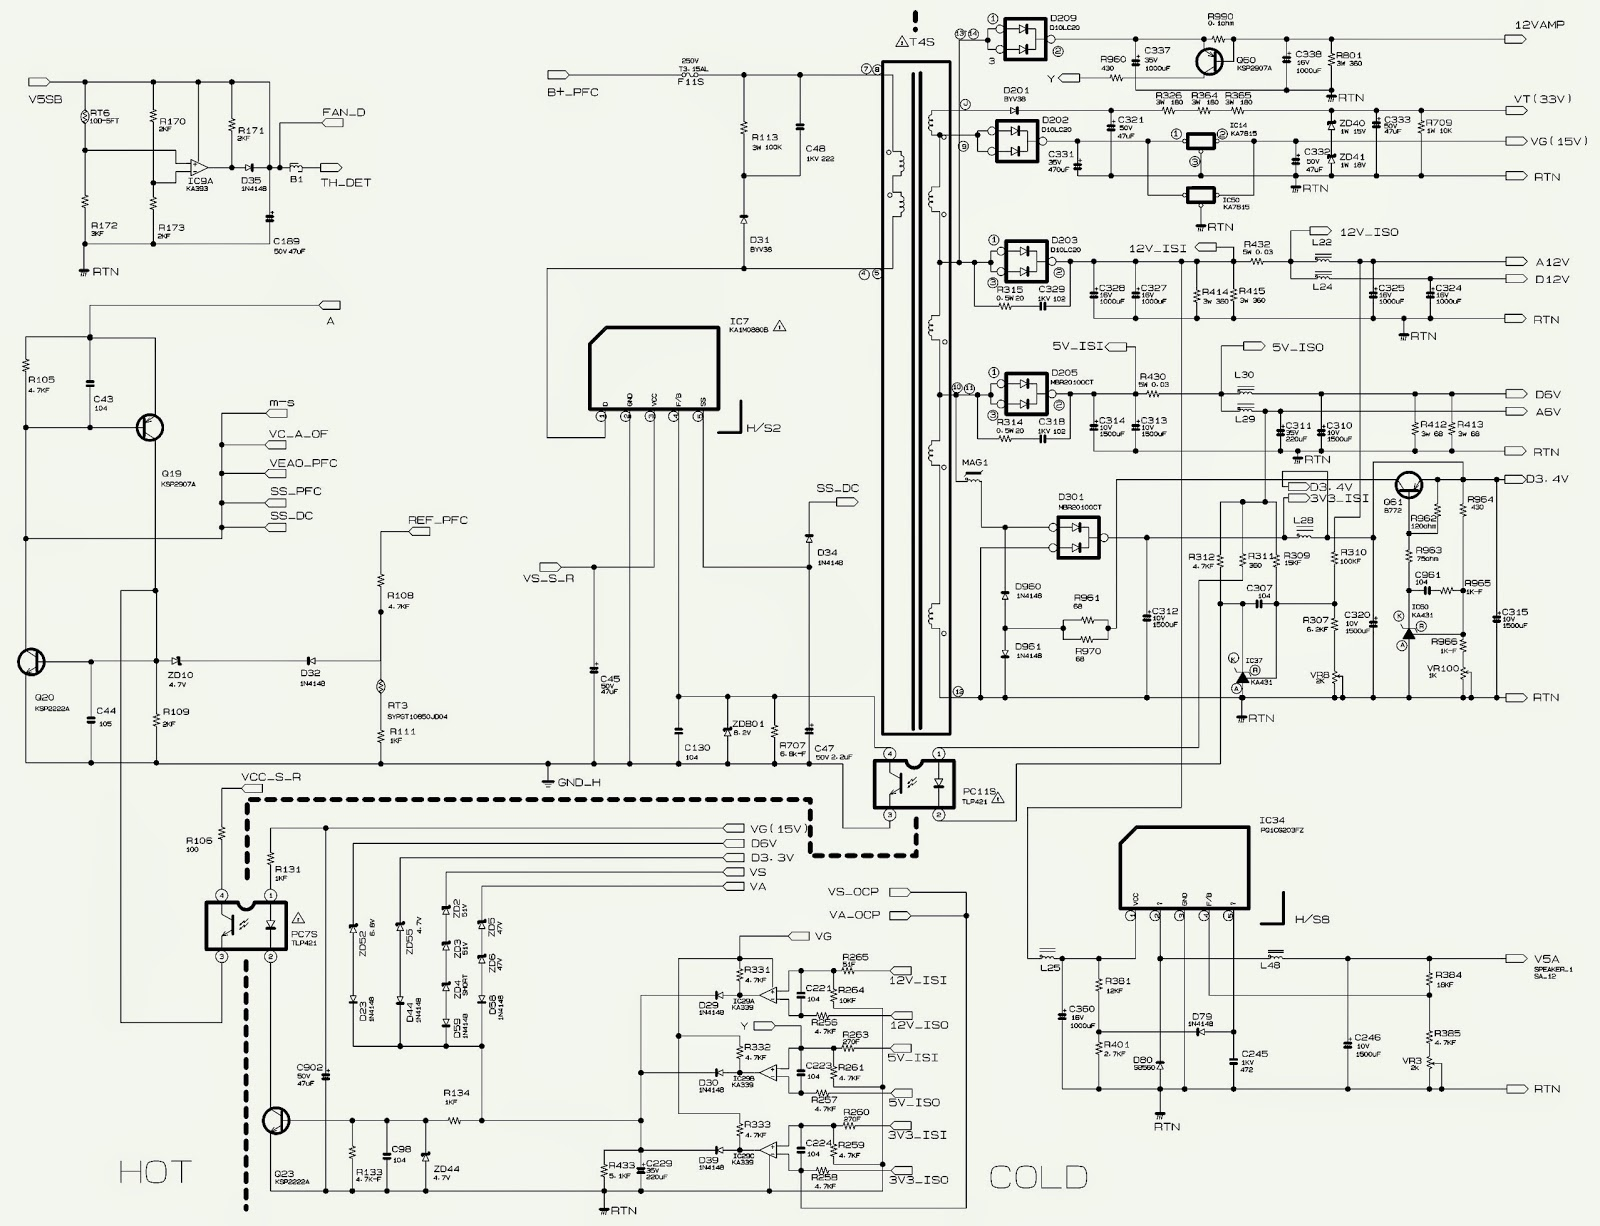 Diagramme De Samsung On5 Schematic Diagram Version Complte